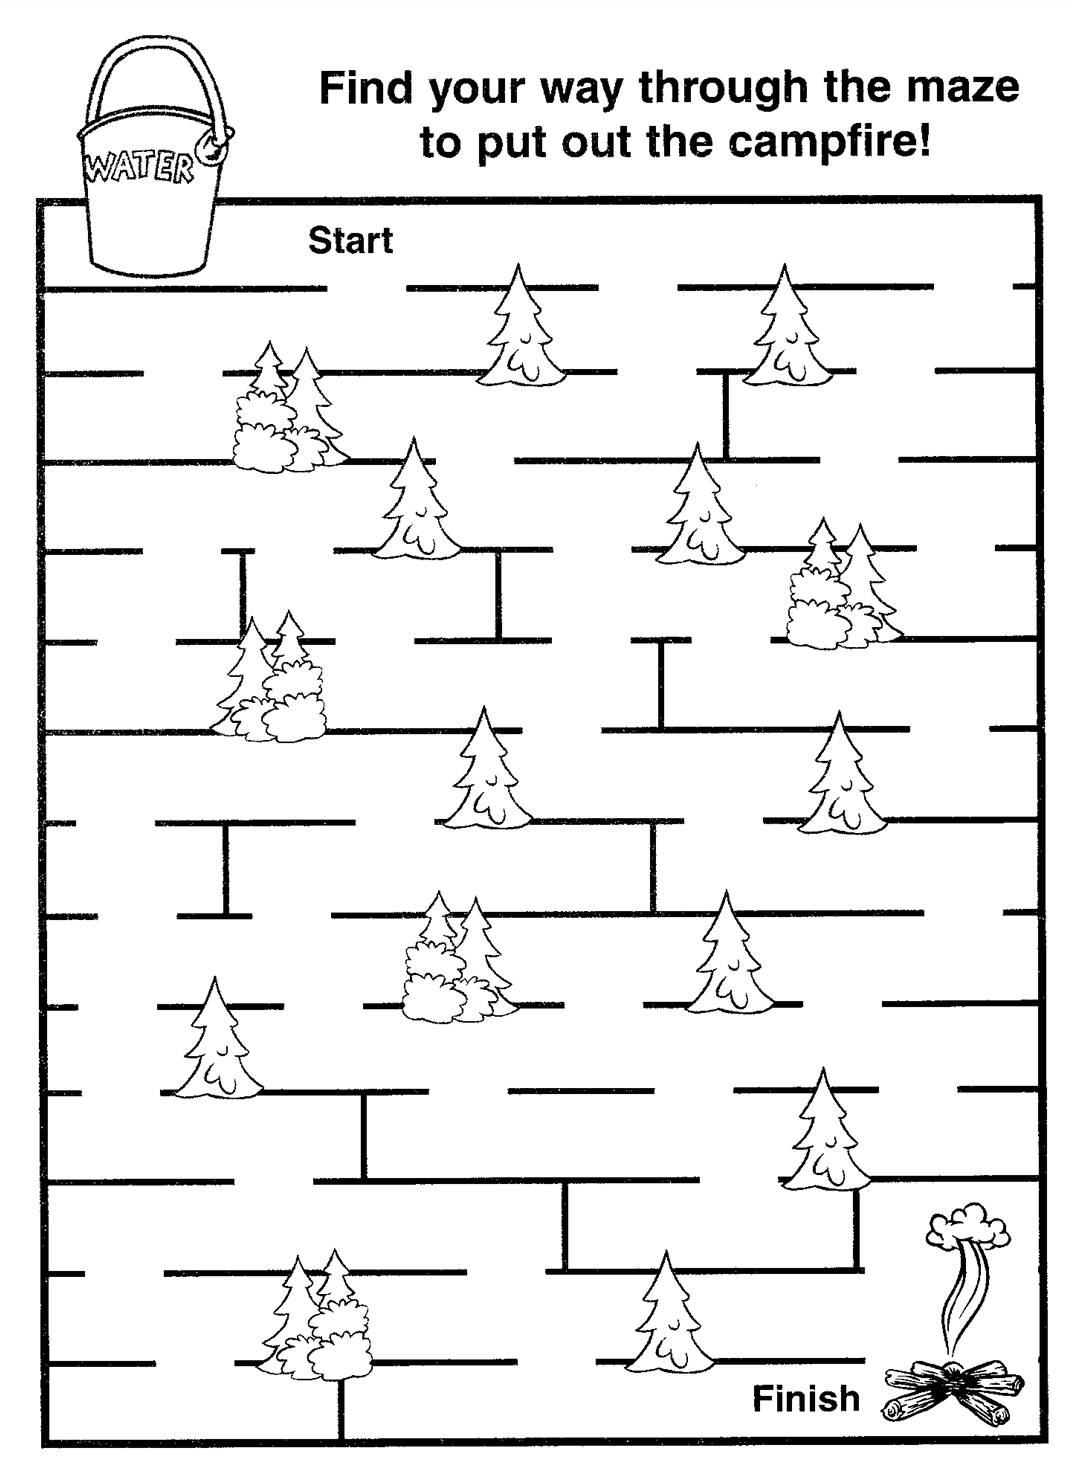 Smokey Bear fire prevention maze game